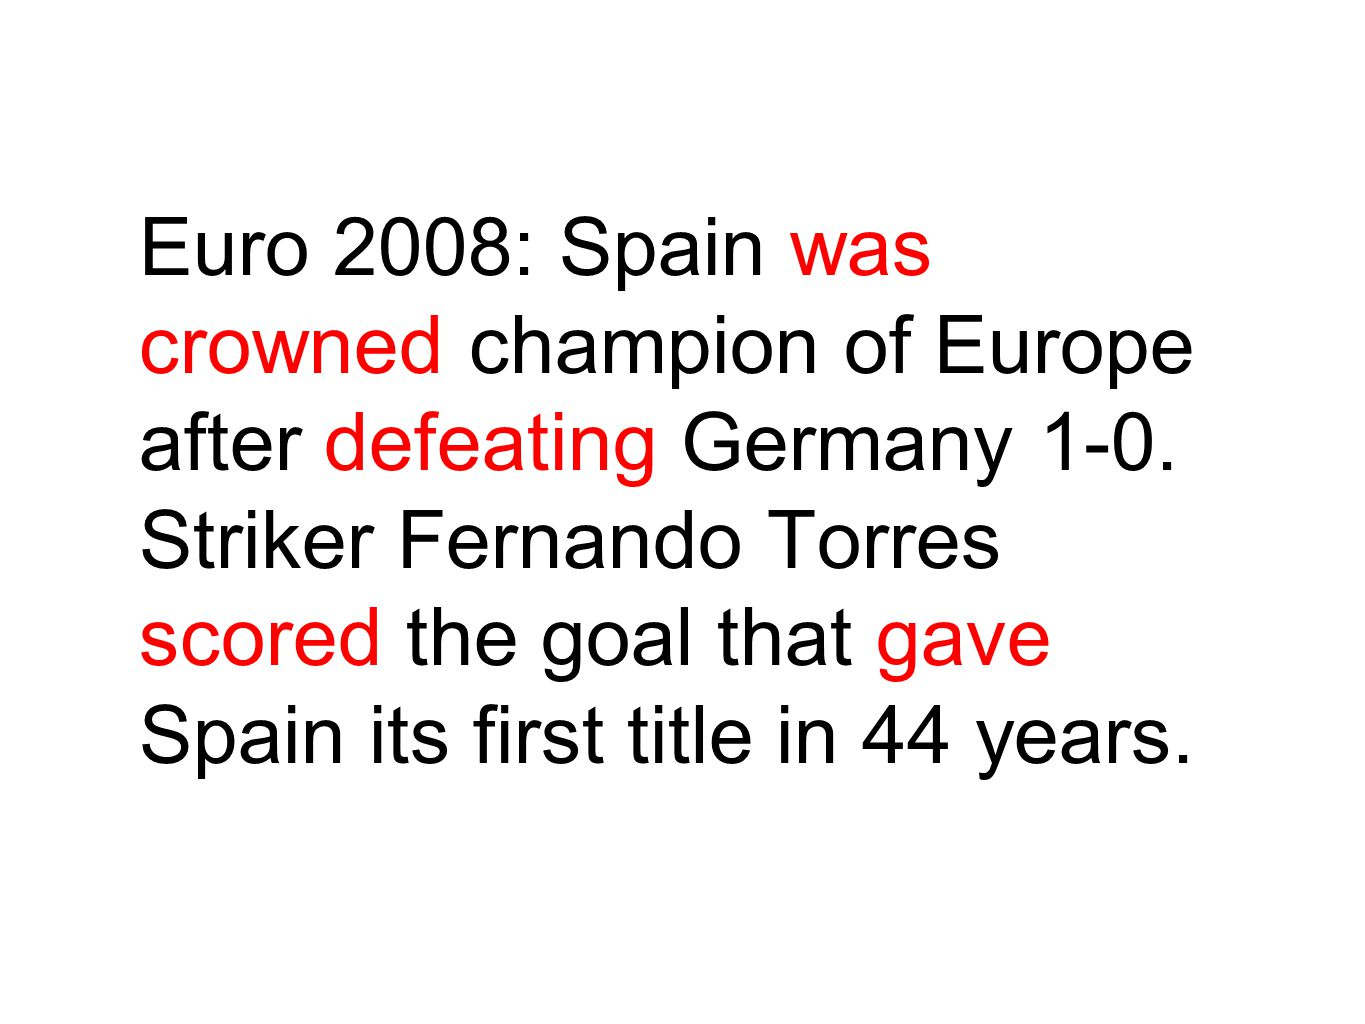 Euro 2008: Spain was crowned champion of Europe after defeating Germany 1-0. Striker Fernando Torres scored the goal that gave Spain its first title i